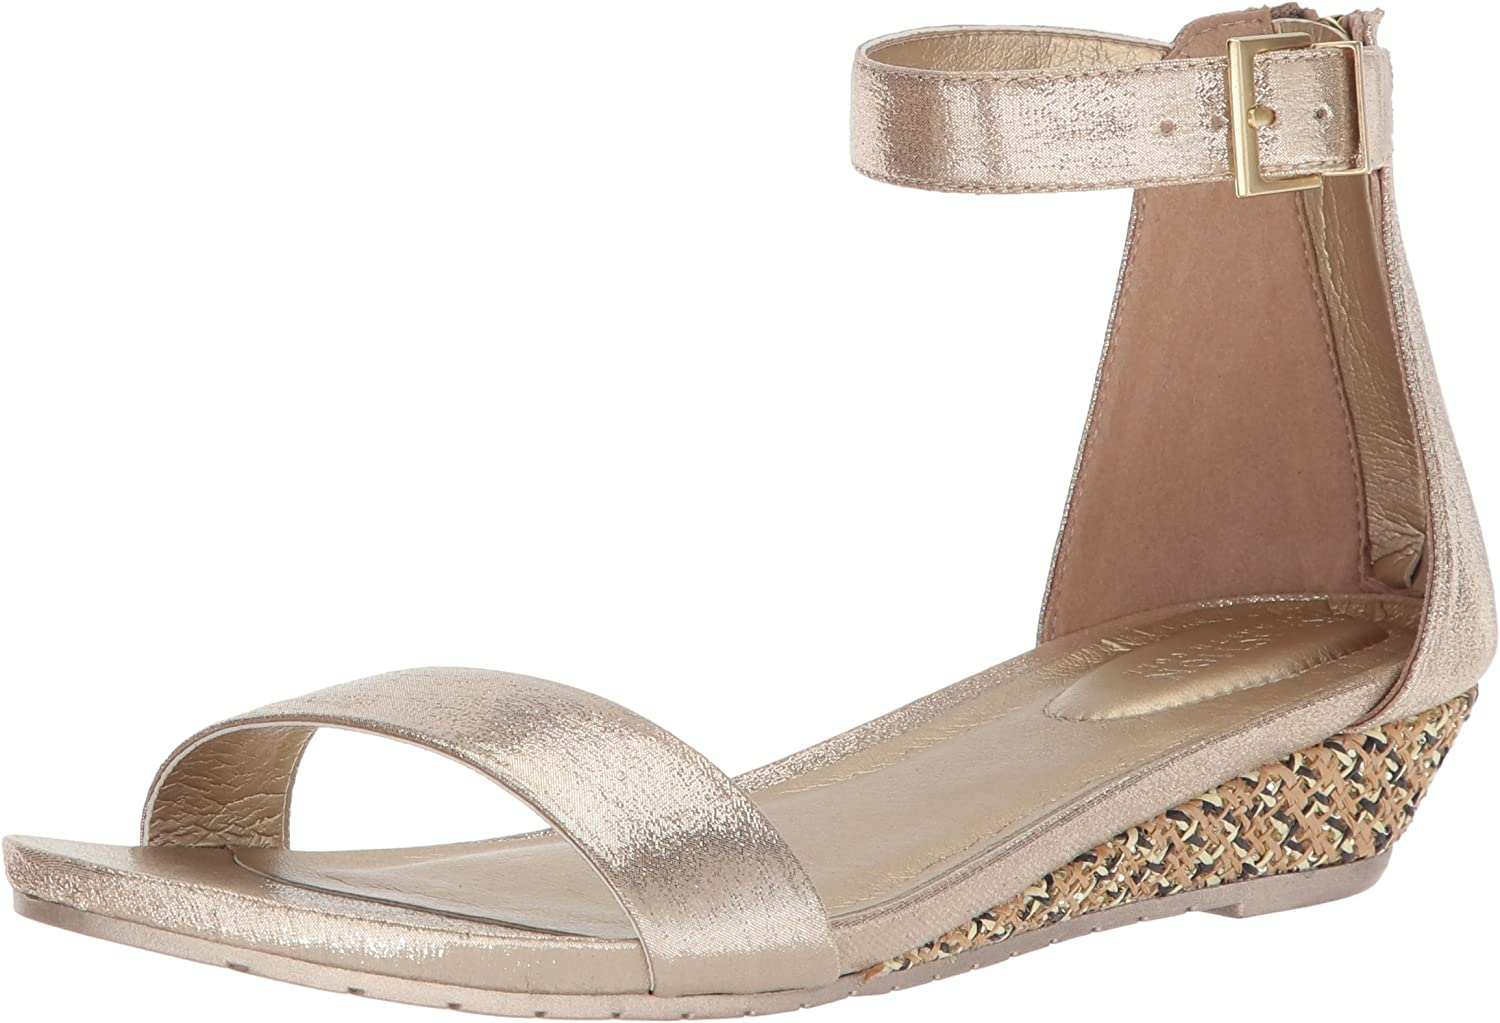 Kenneth Cole REACTION Womens Great Viber Ankle Strap Low Wedge Sandal Wedge Sandal